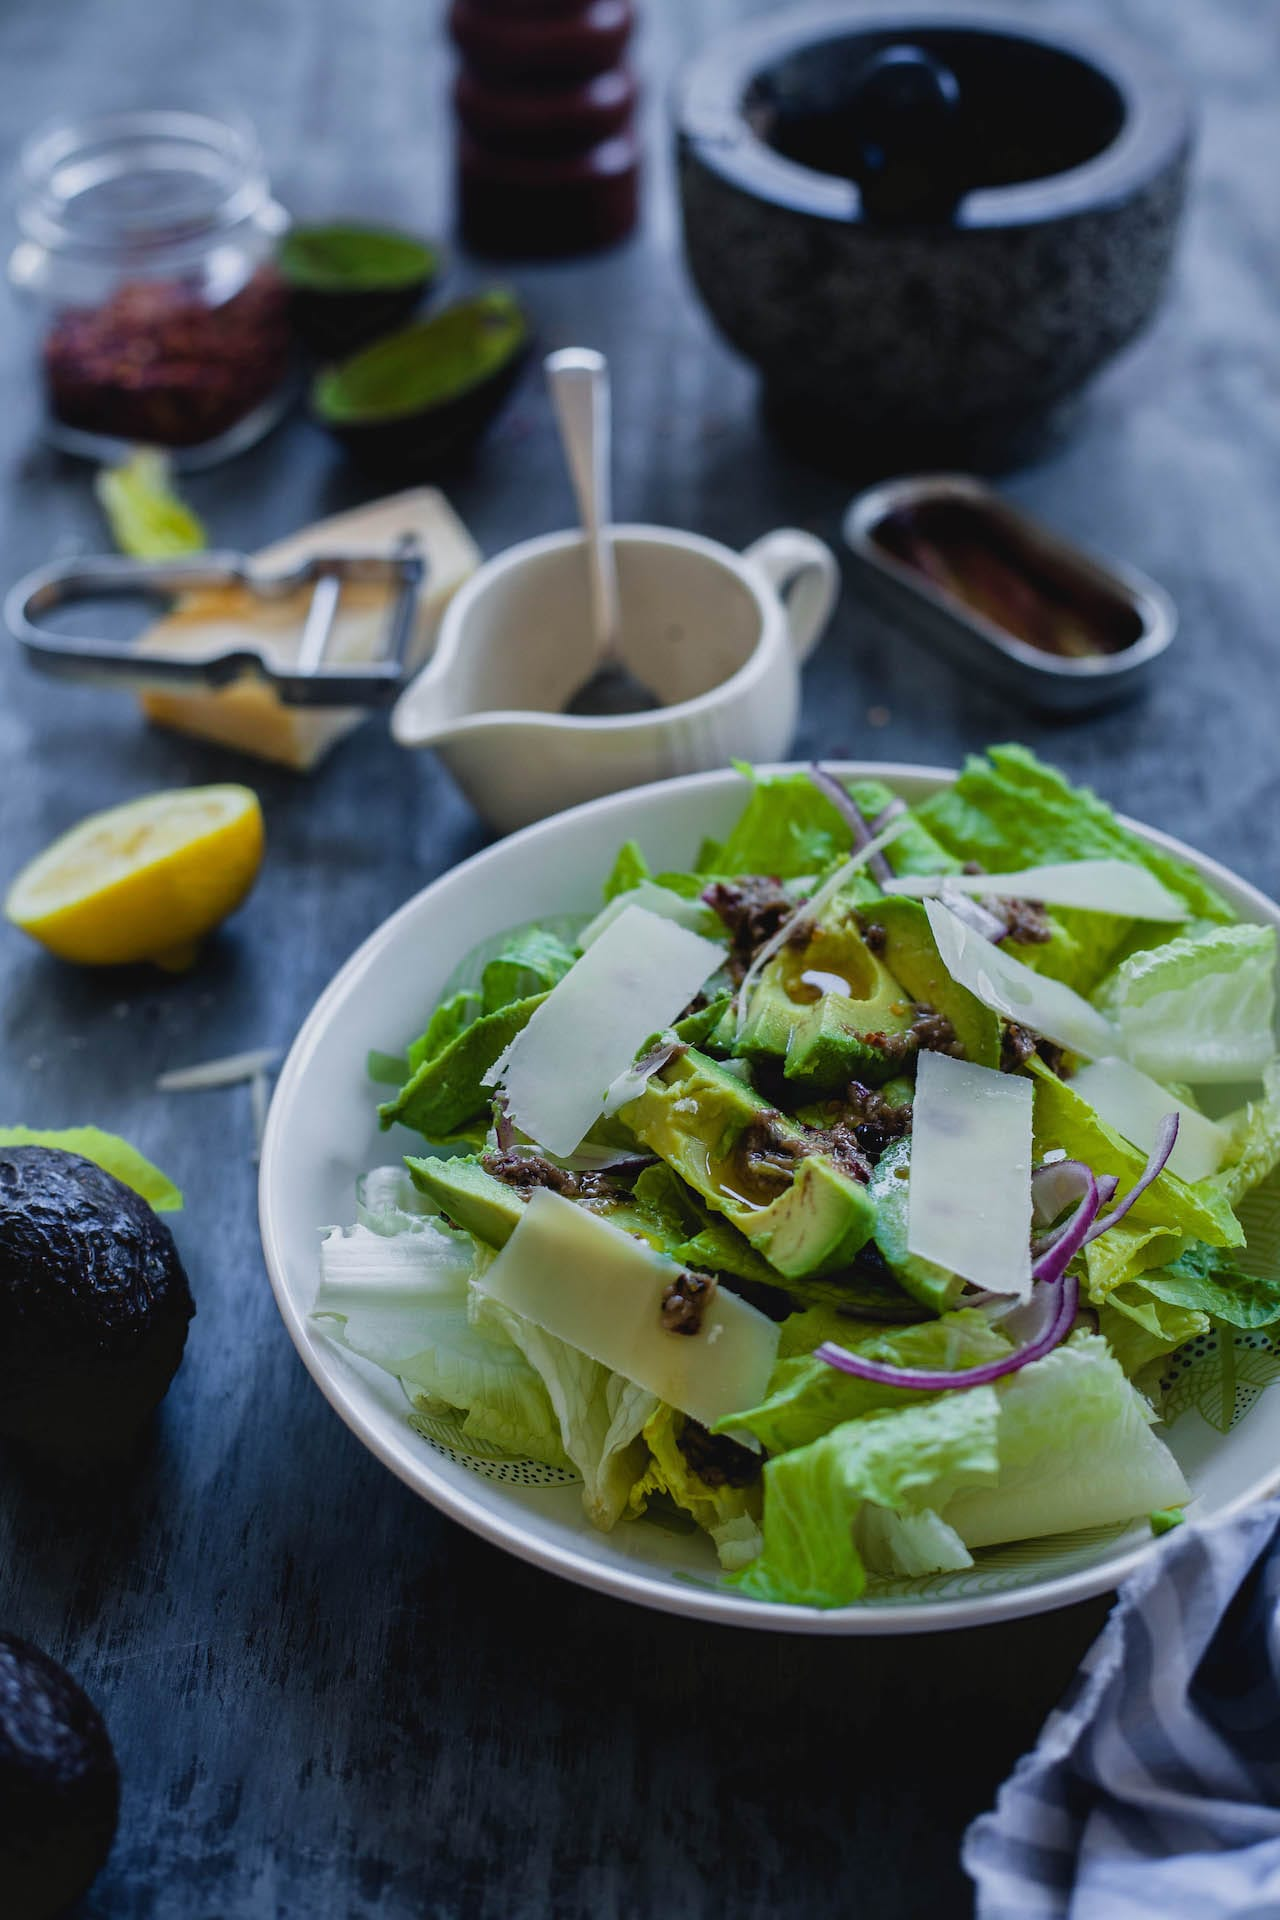 Romaine Avocado Salad With Anchovy Dressing | Playful Cooking